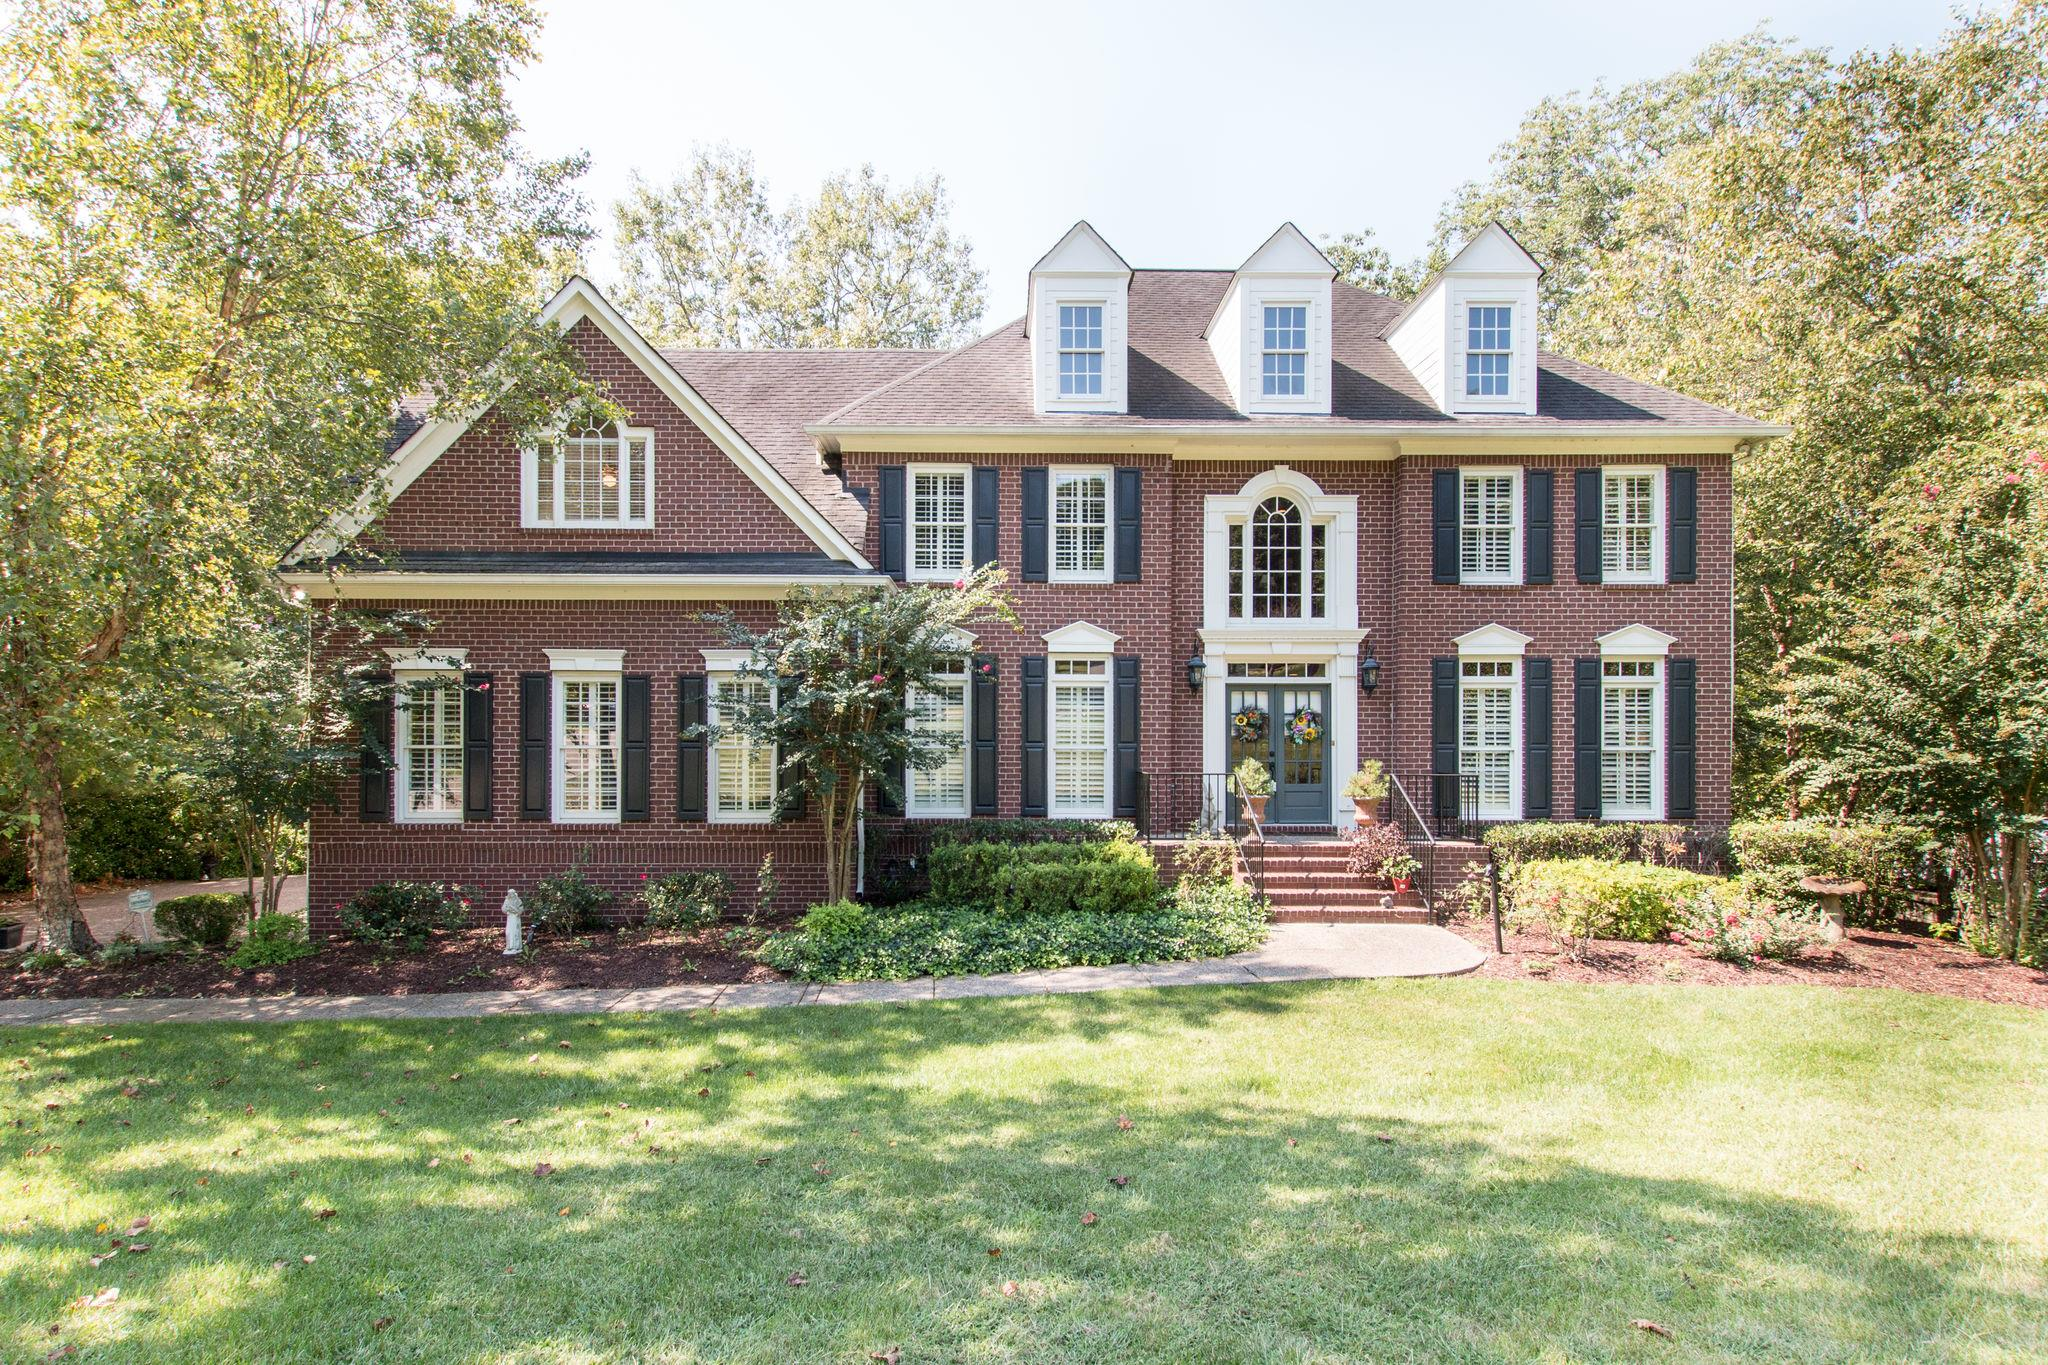 9659 Brunswick Dr, Brentwood, TN 37027 - Brentwood, TN real estate listing